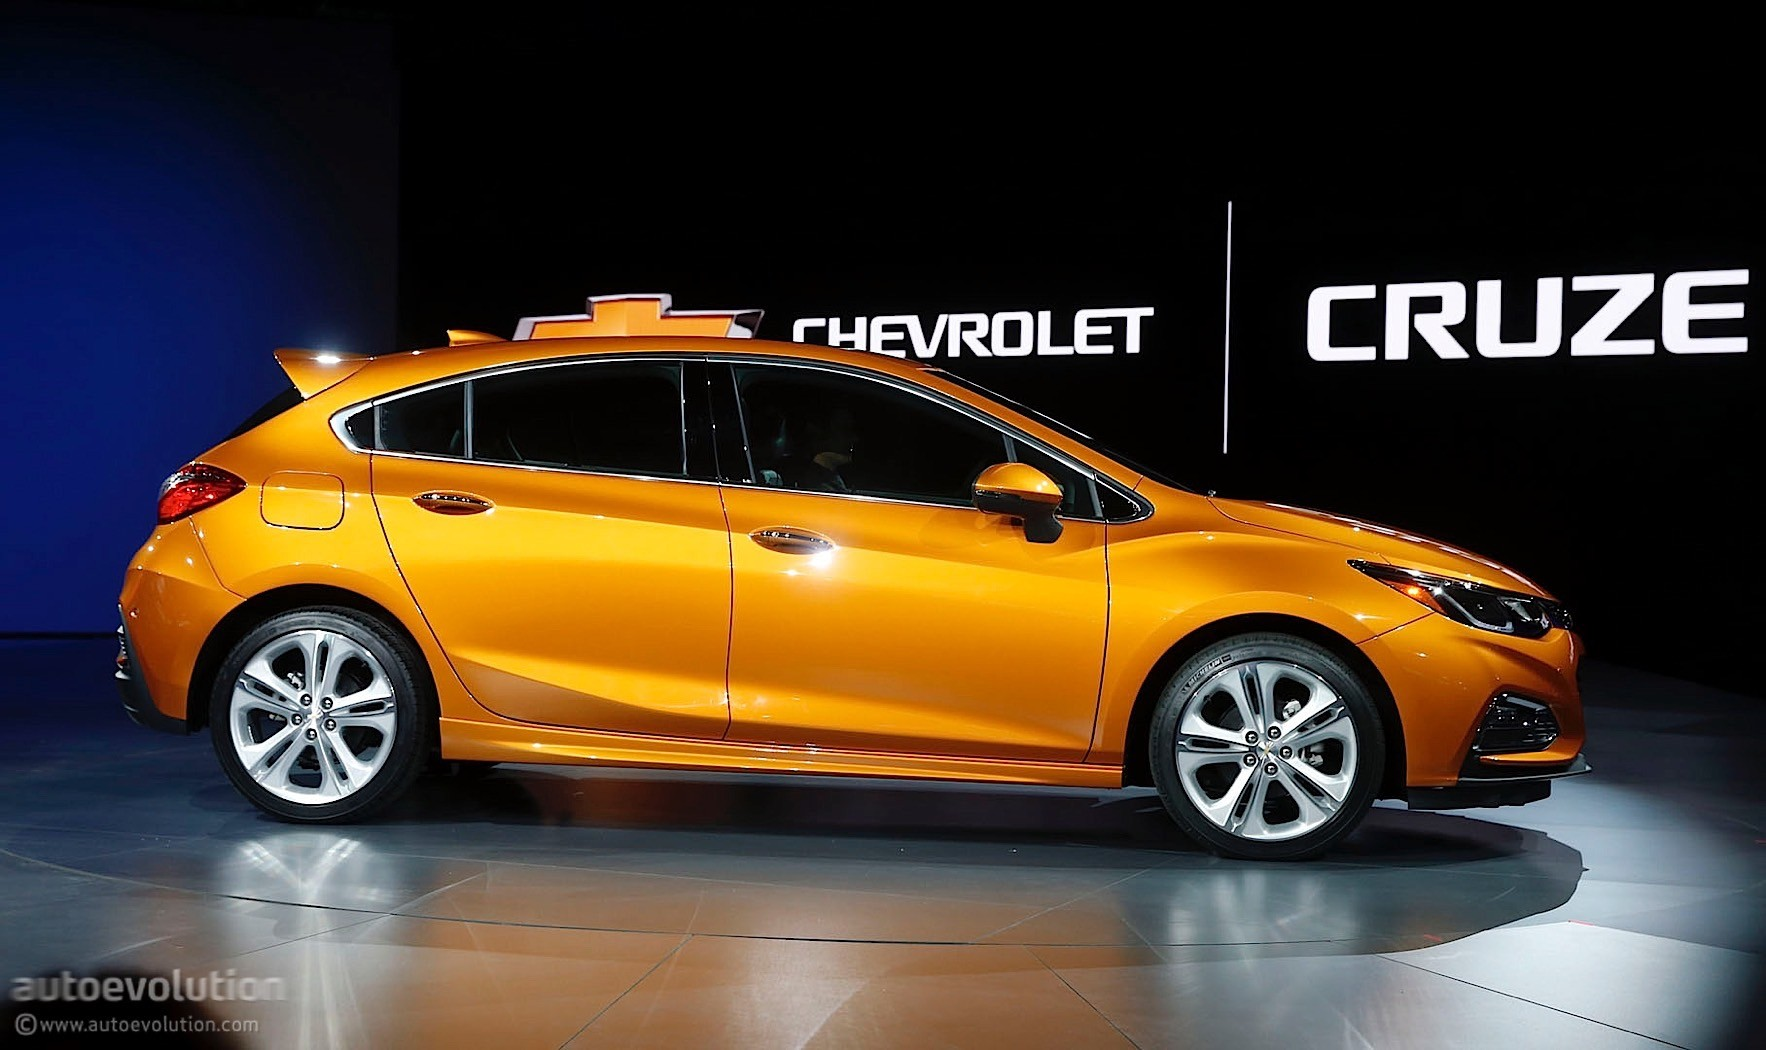 Diesel Powered Chevrolet Cruze Fuel Economy Could Be